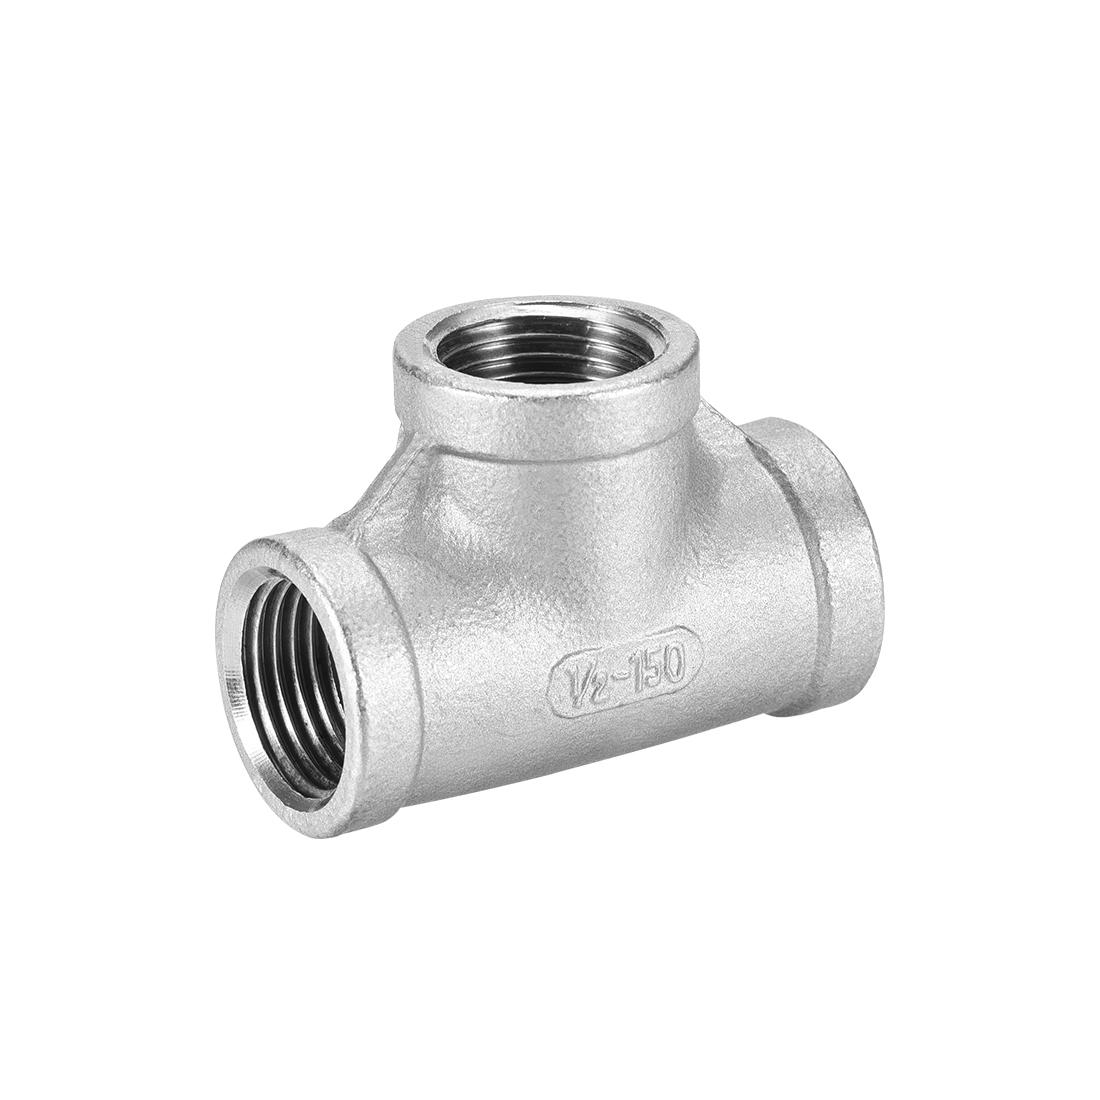 Stainless Steel 304 Pipe Fitting 1/2BSPT Female Class 150 Tee Shaped Connector